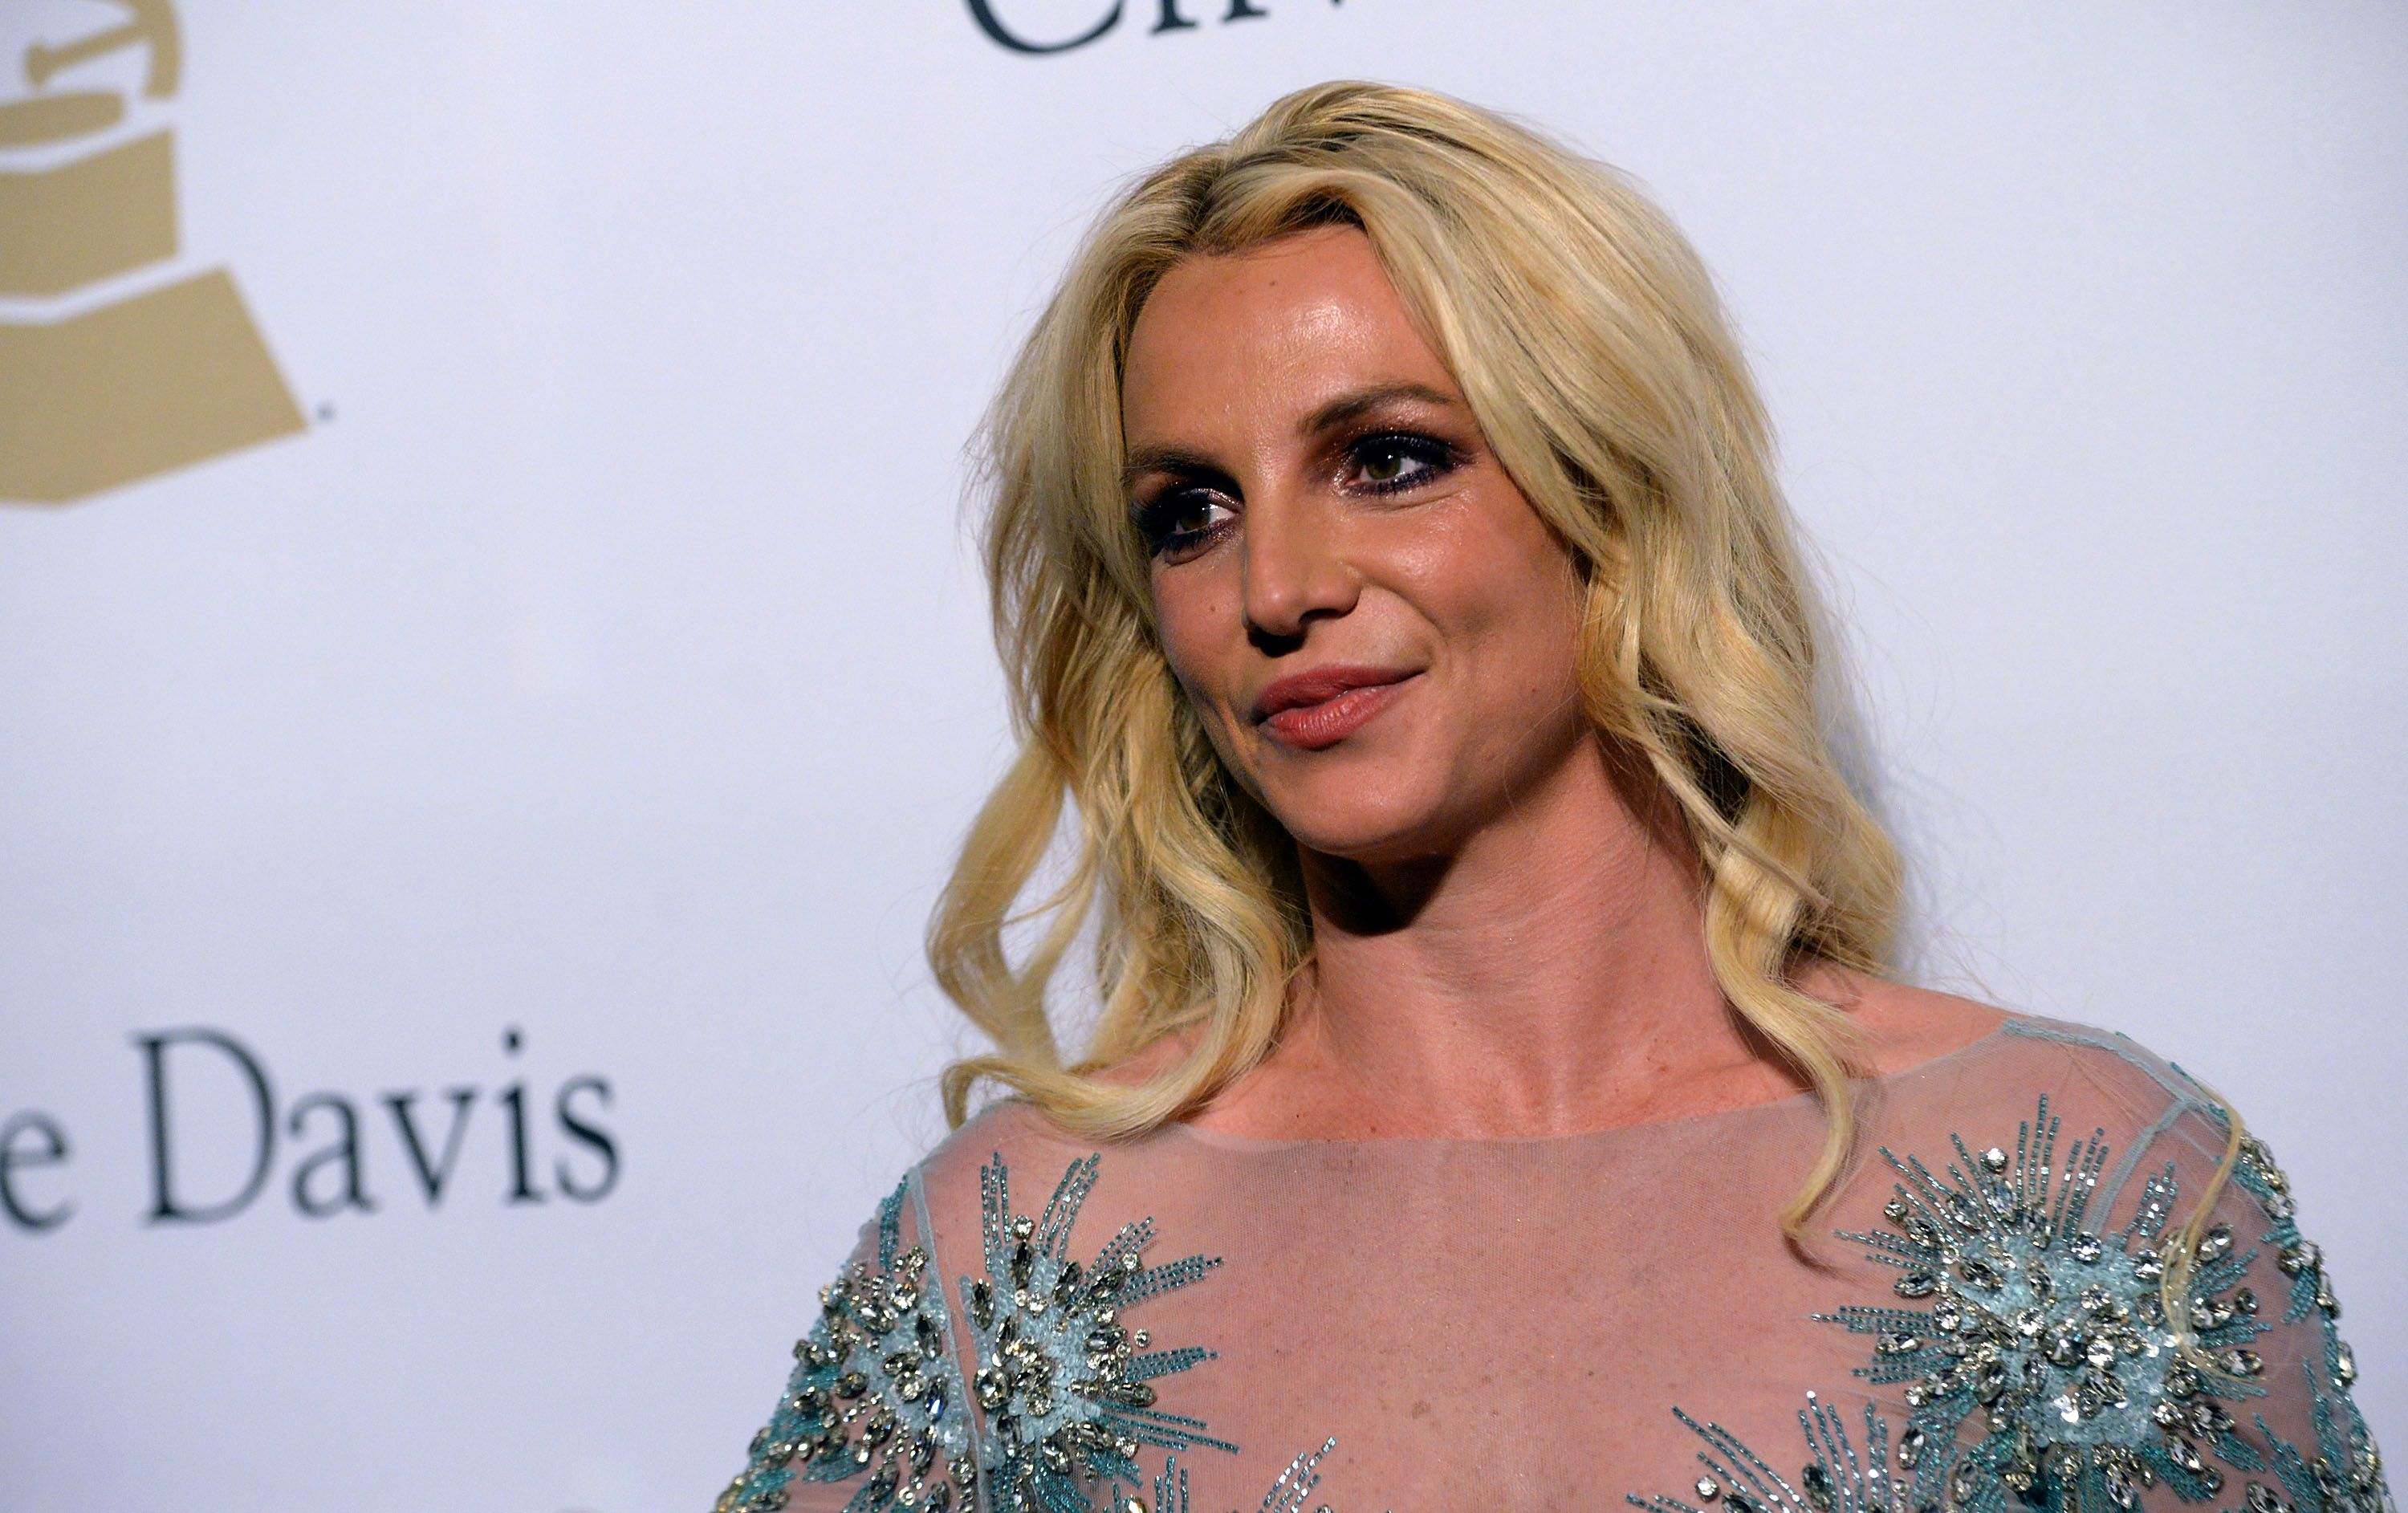 Britney Spears walking down the red carpet at the 2017 Pre-GRAMMY Gala at The Beverly Hilton Hotel in Beverly Hills, California   Photo: Scott Dudelson/Getty Images